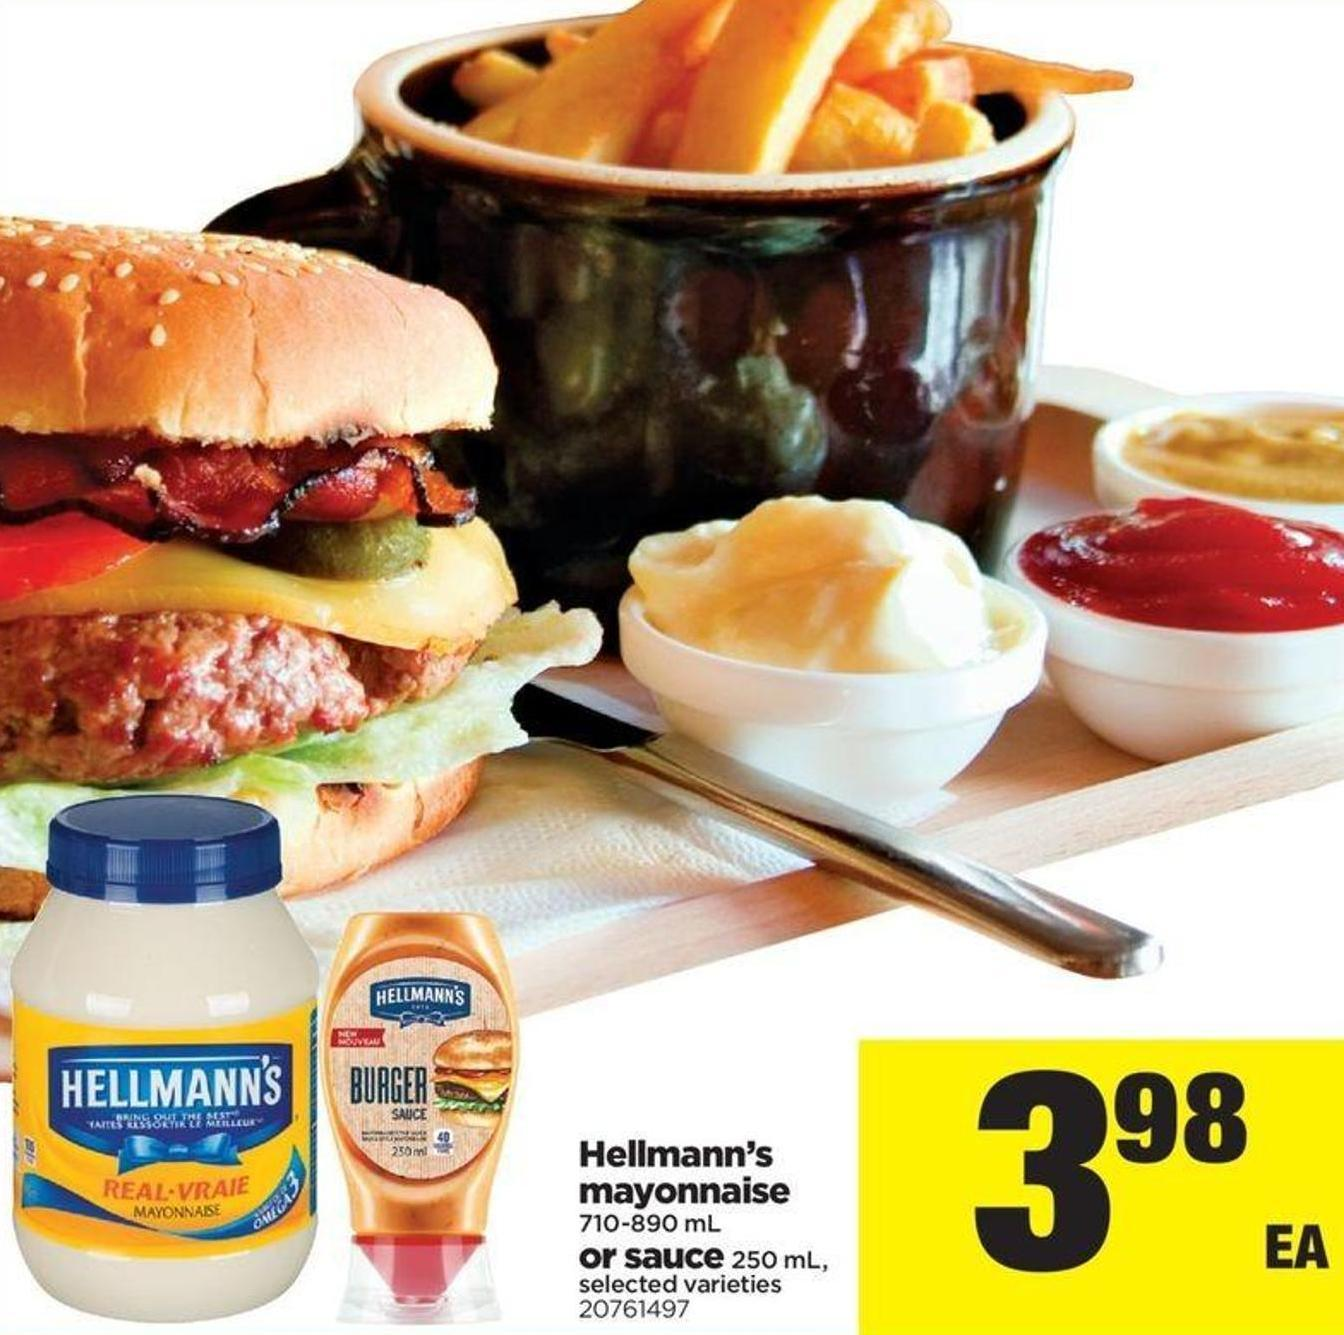 Hellmann's Mayonnaise 710-890 Ml Or Sauce 250 ml